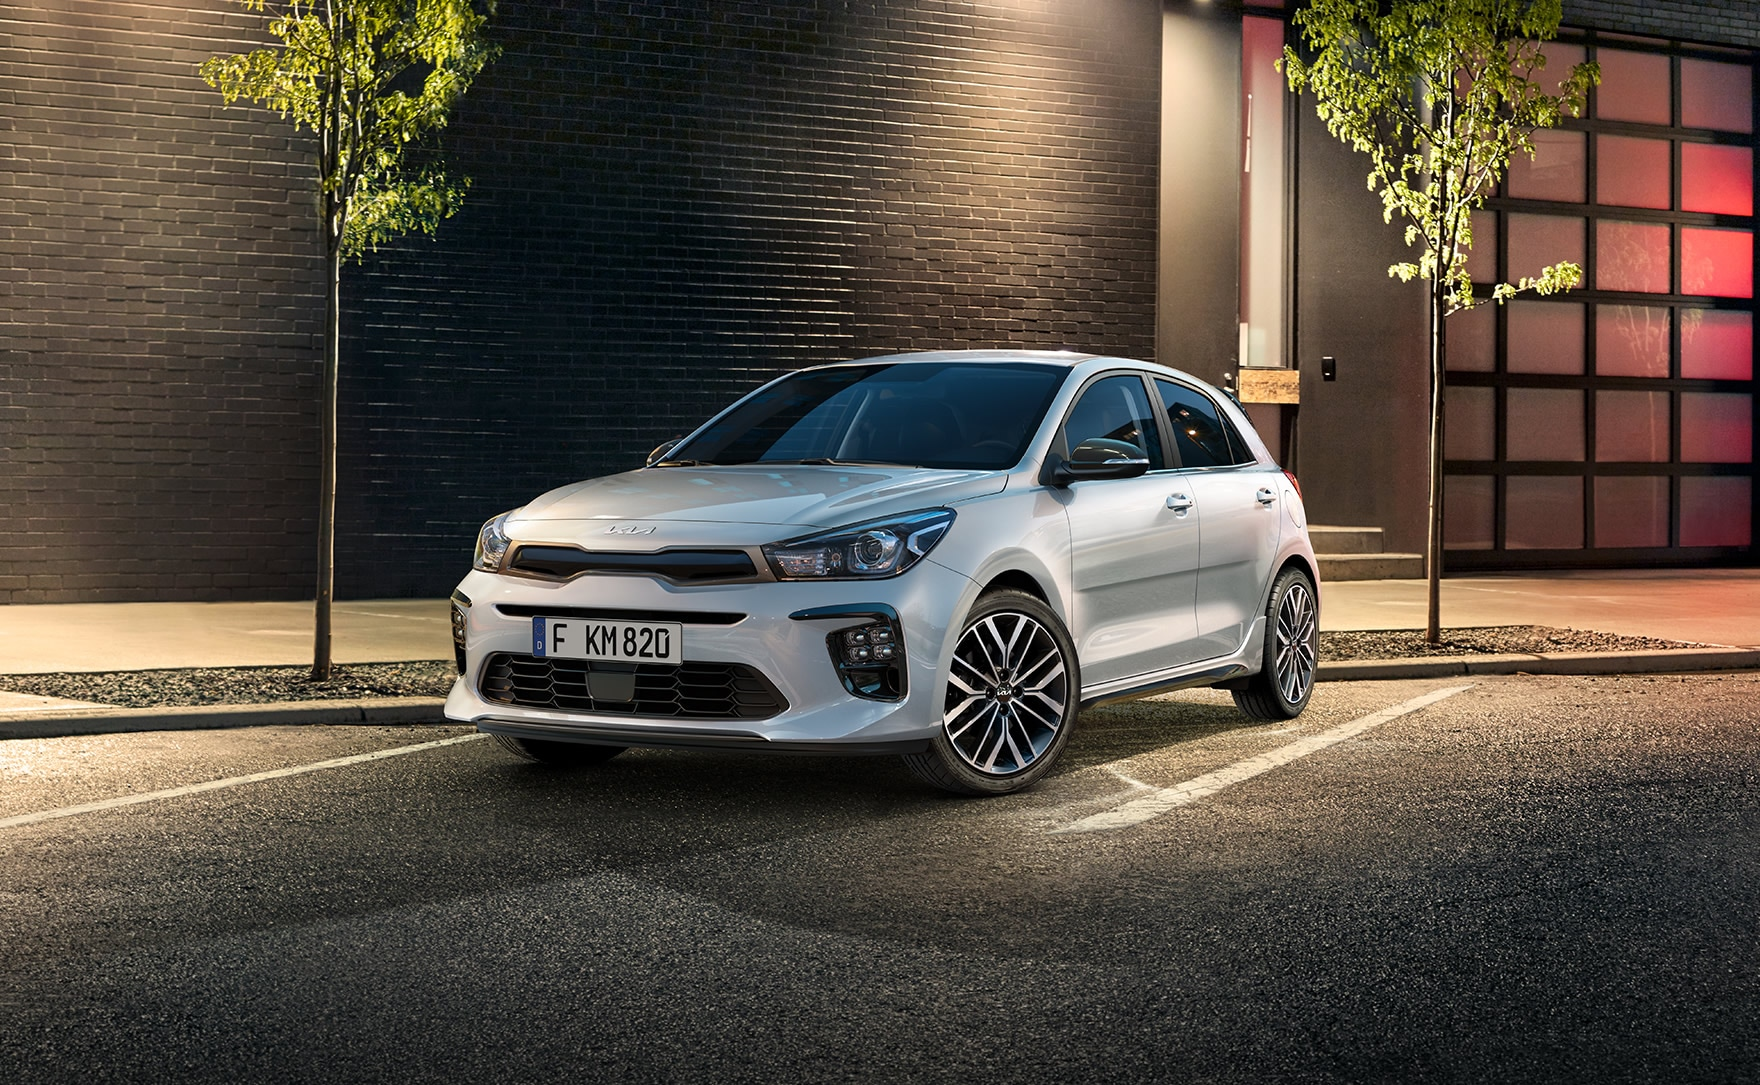 2020 All Kia Rio Photos